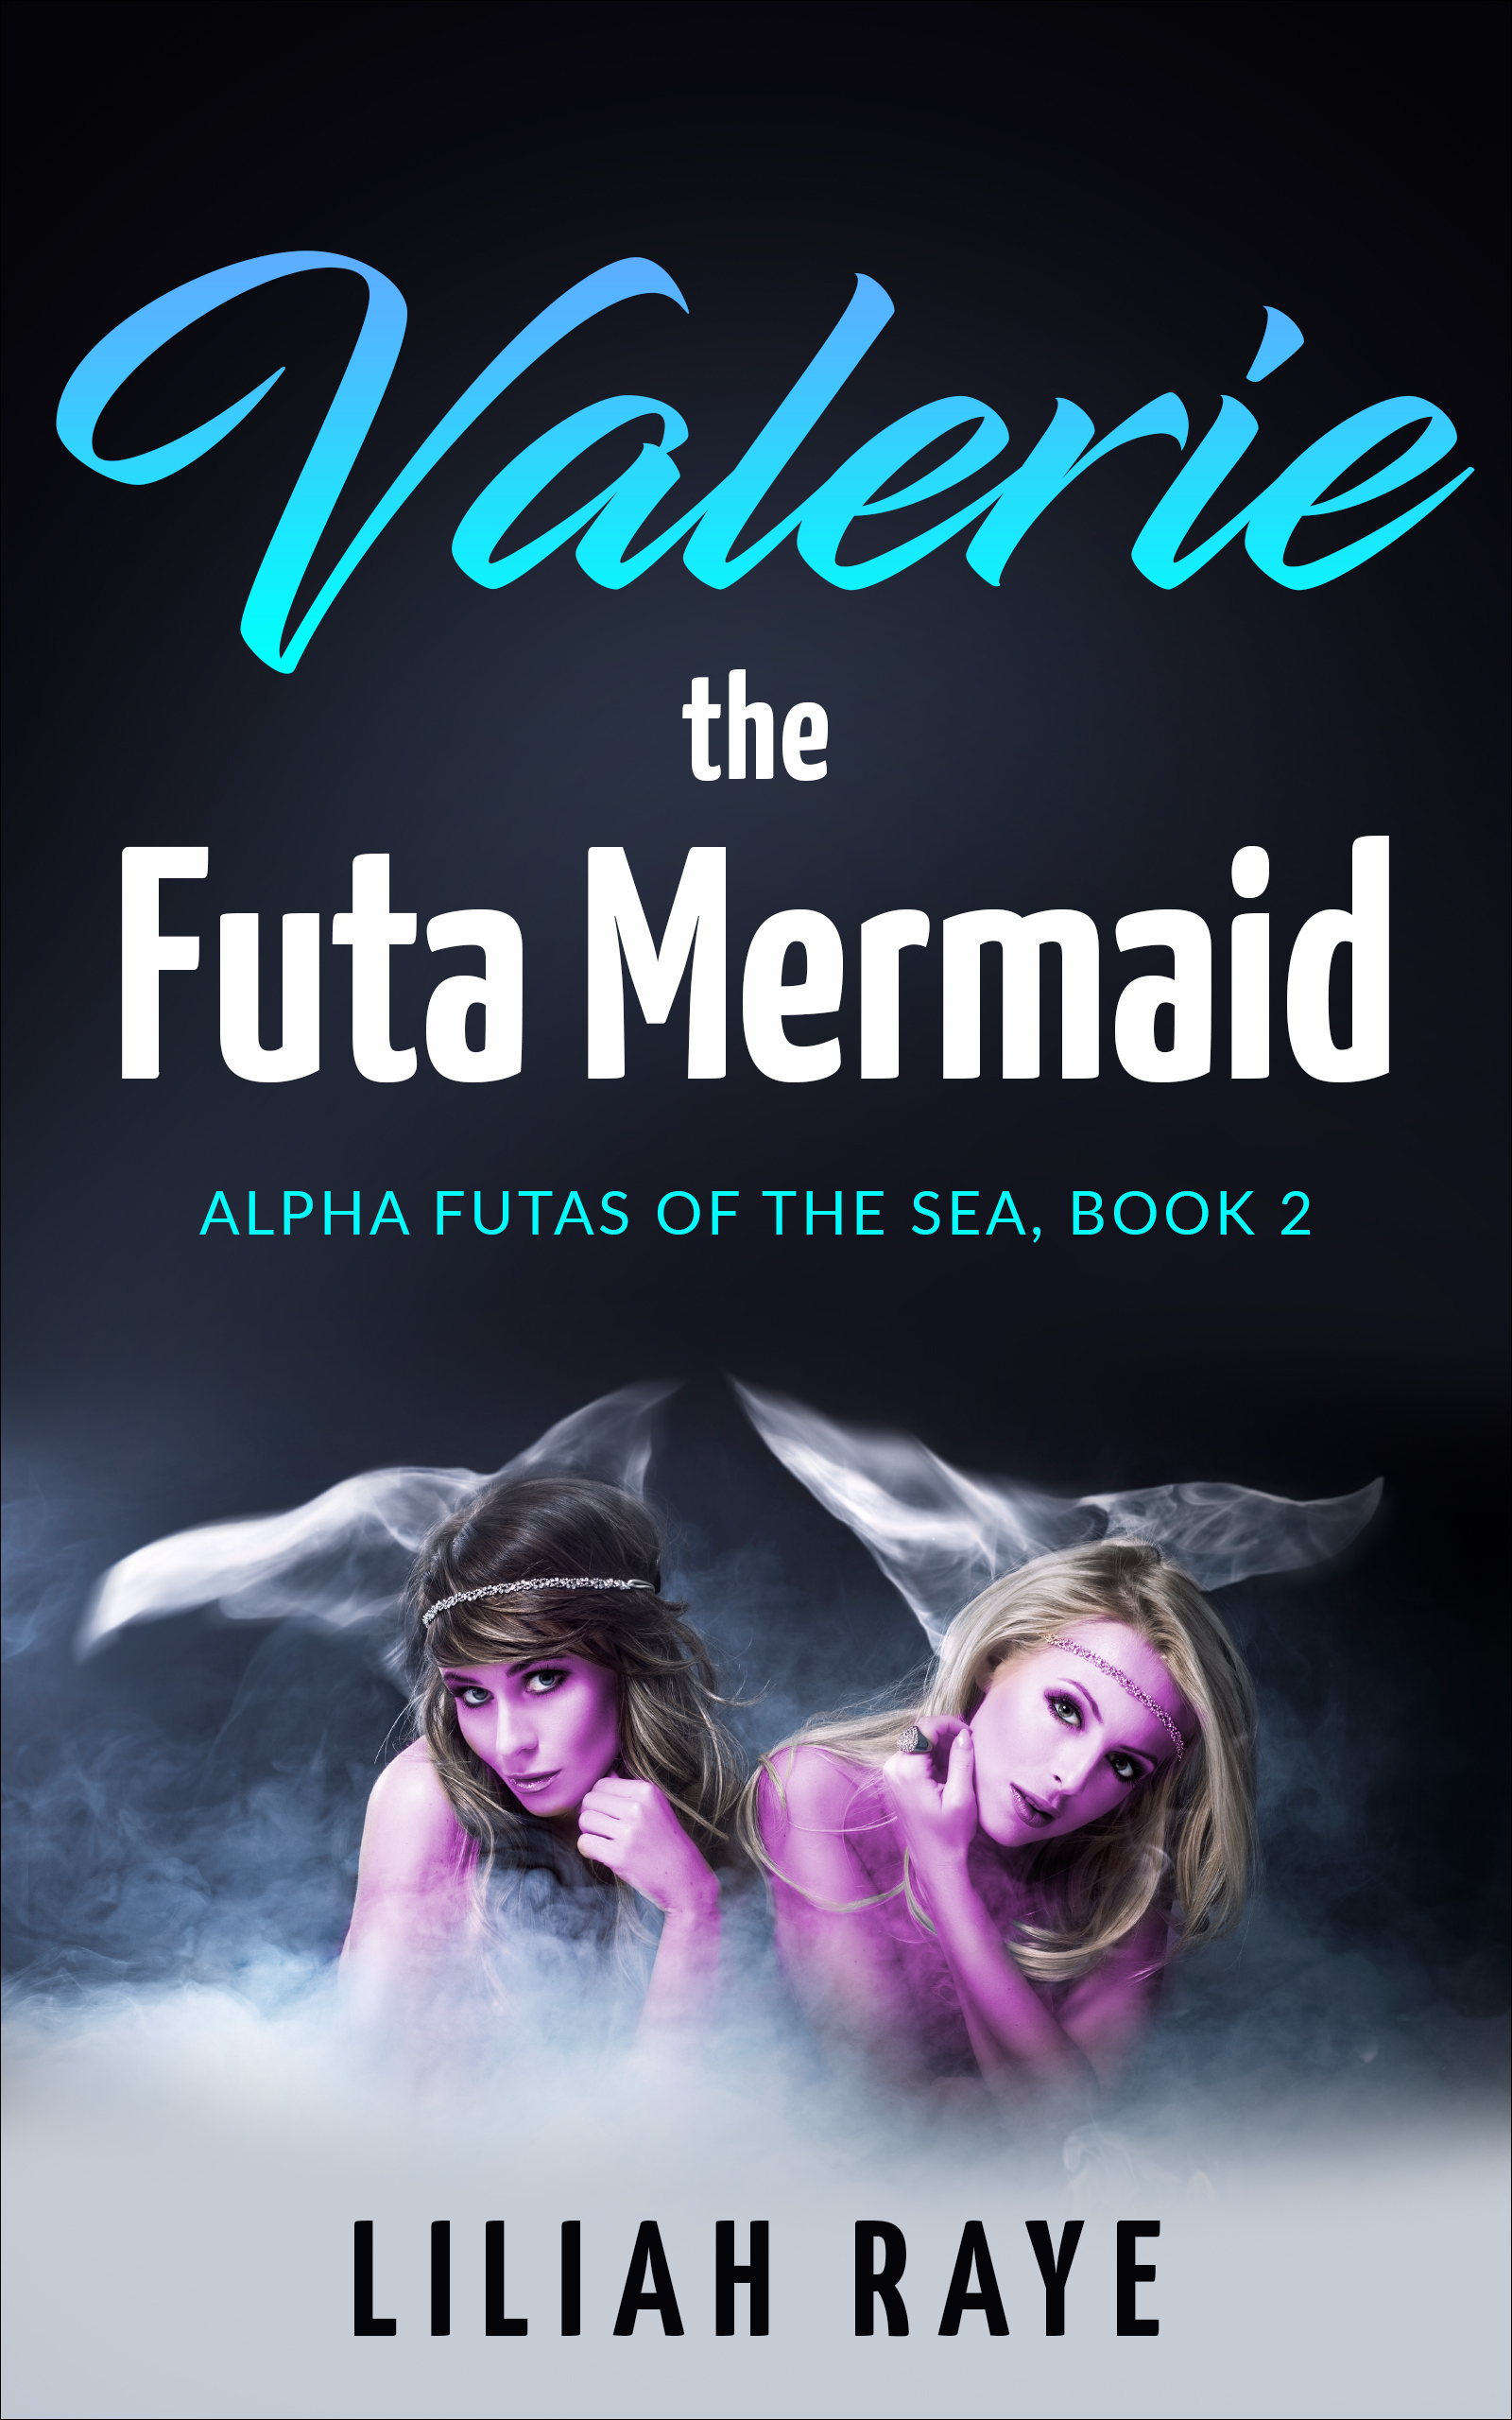 Valerie the Futa Mermaid by Liliah Raye